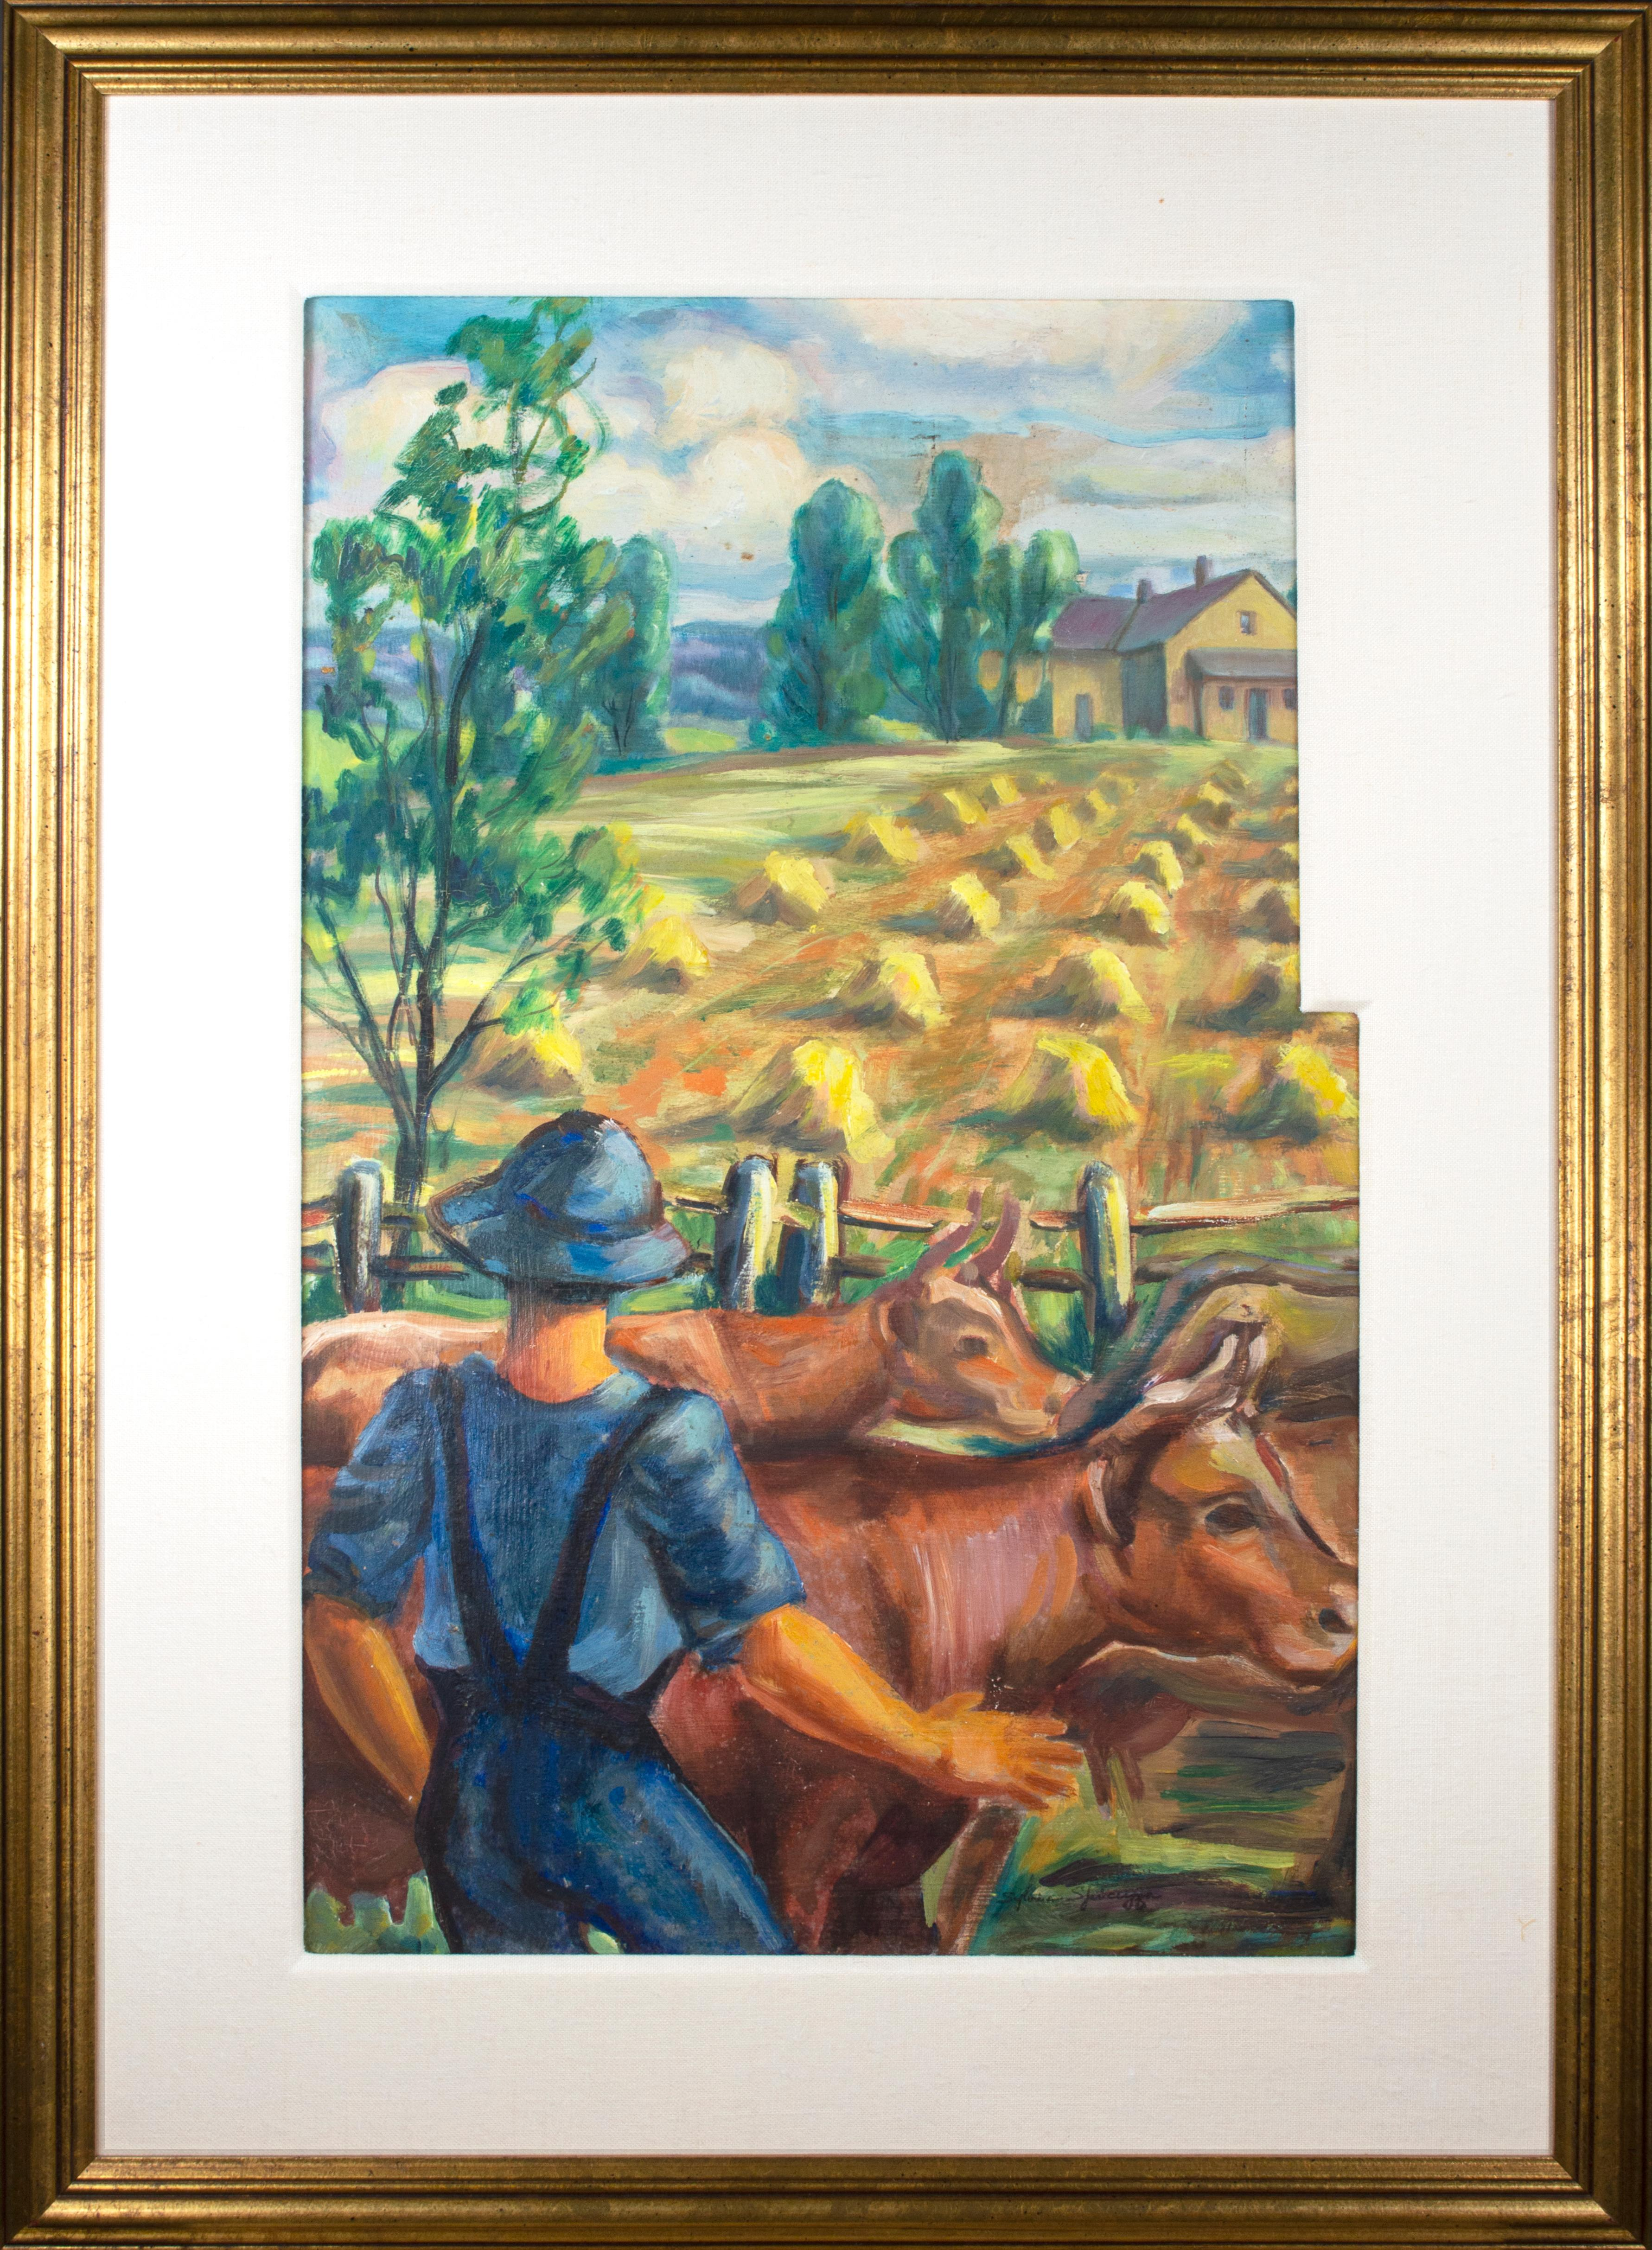 'Farmer with Cows' original Regionalist painting on board Midwestern landscape